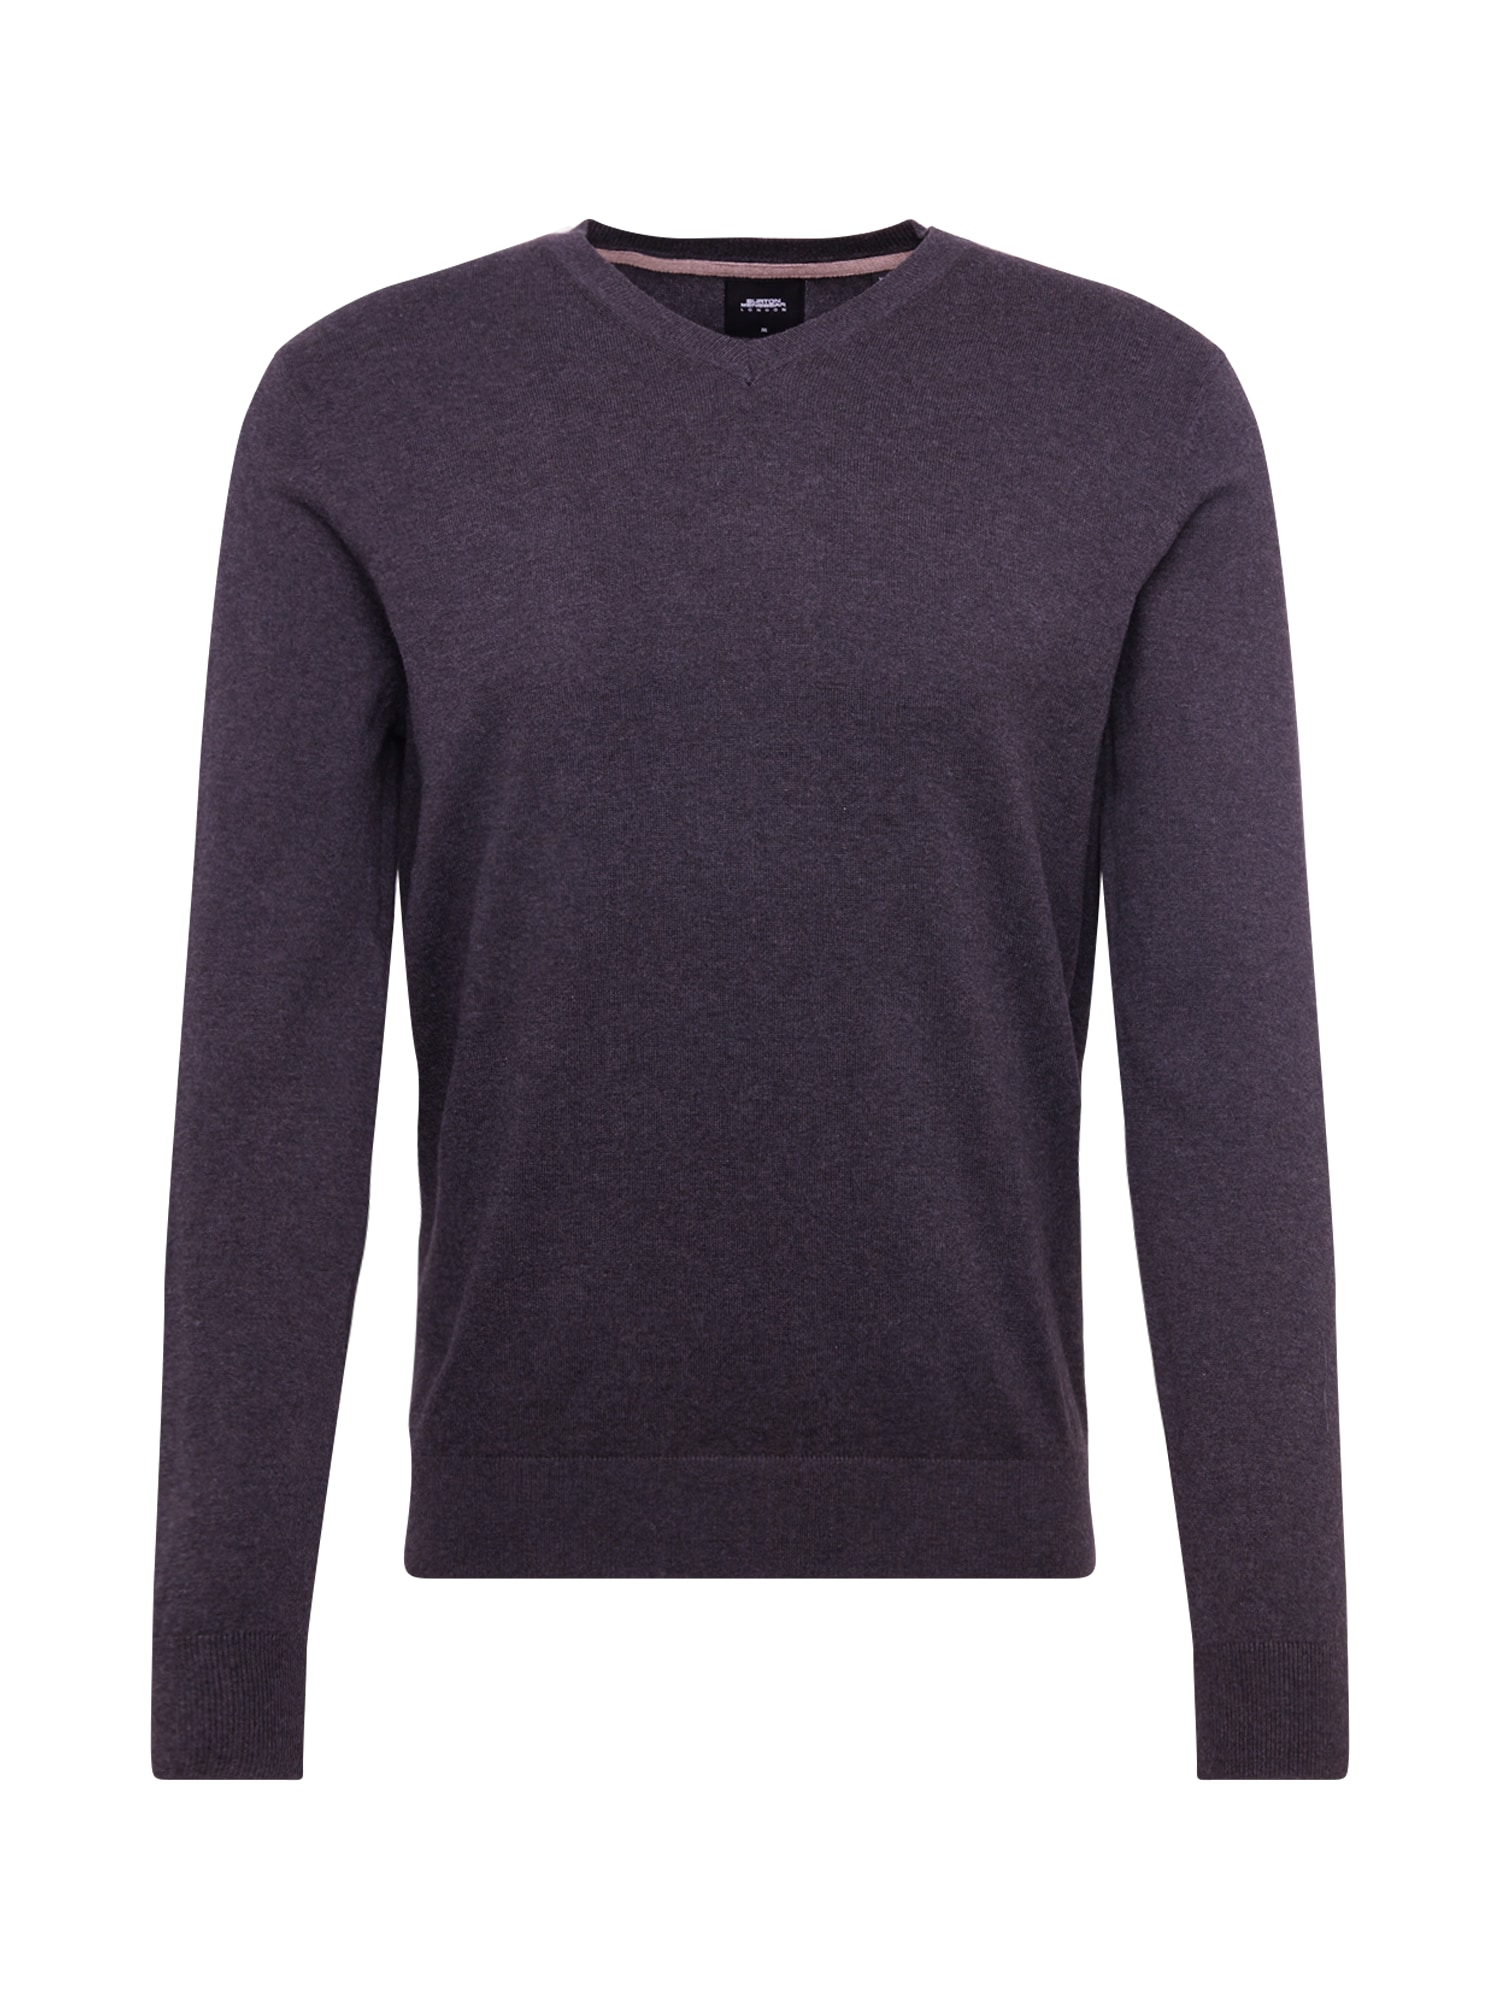 BURTON MENSWEAR LONDON Svetr 'core vee charcoal'  šedá